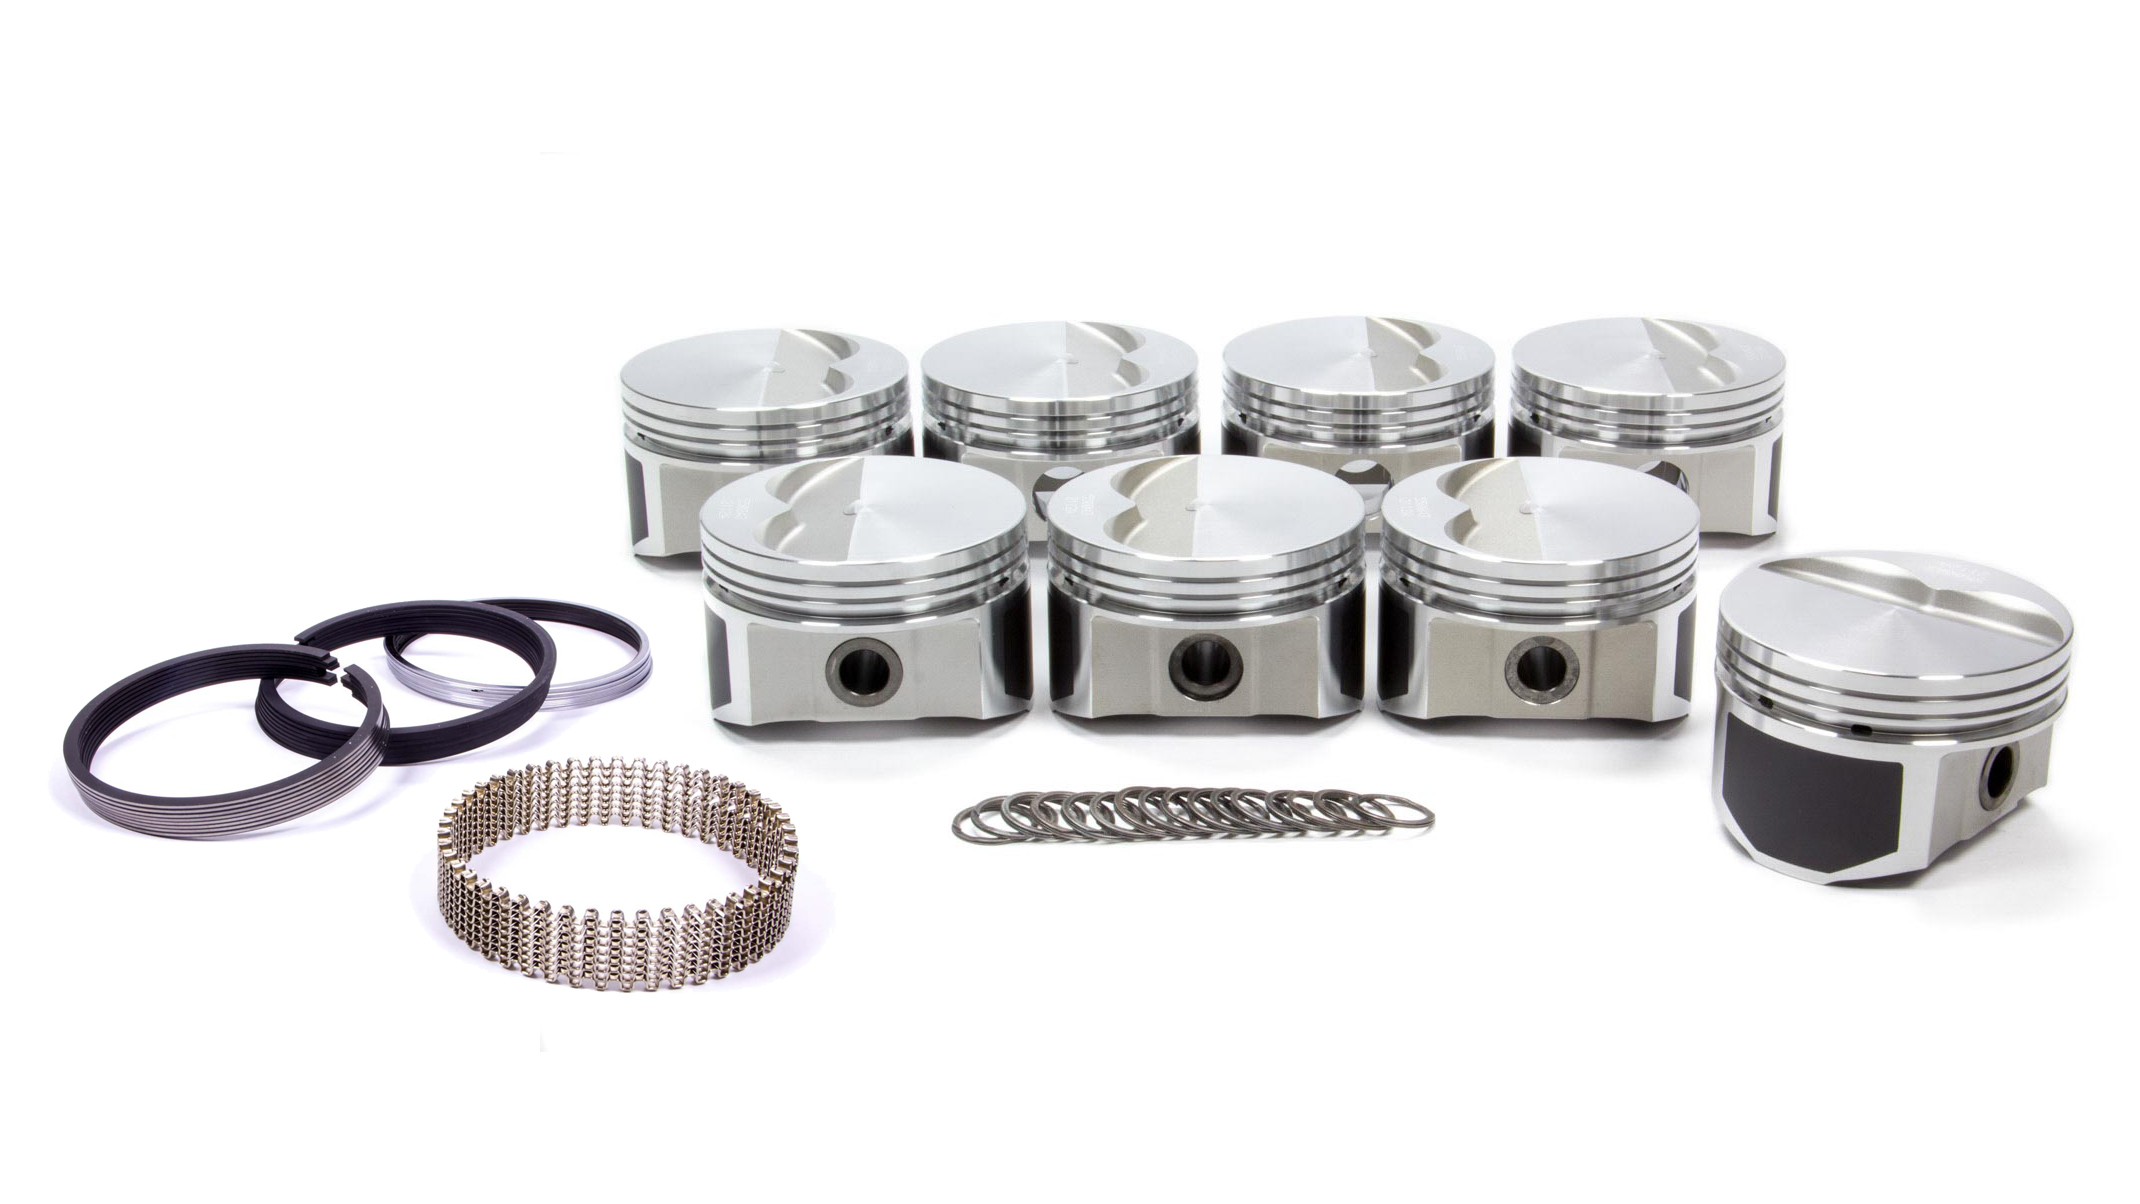 Wiseco Pro-Tru PTS500A3 Piston and Ring, Windsor Flat Top, Forged, 4.030 in Bore, 1/16 x 1/16 x 3/16 in Ring Grooves, Minus 7.0 cc, Small Block Ford, Kit